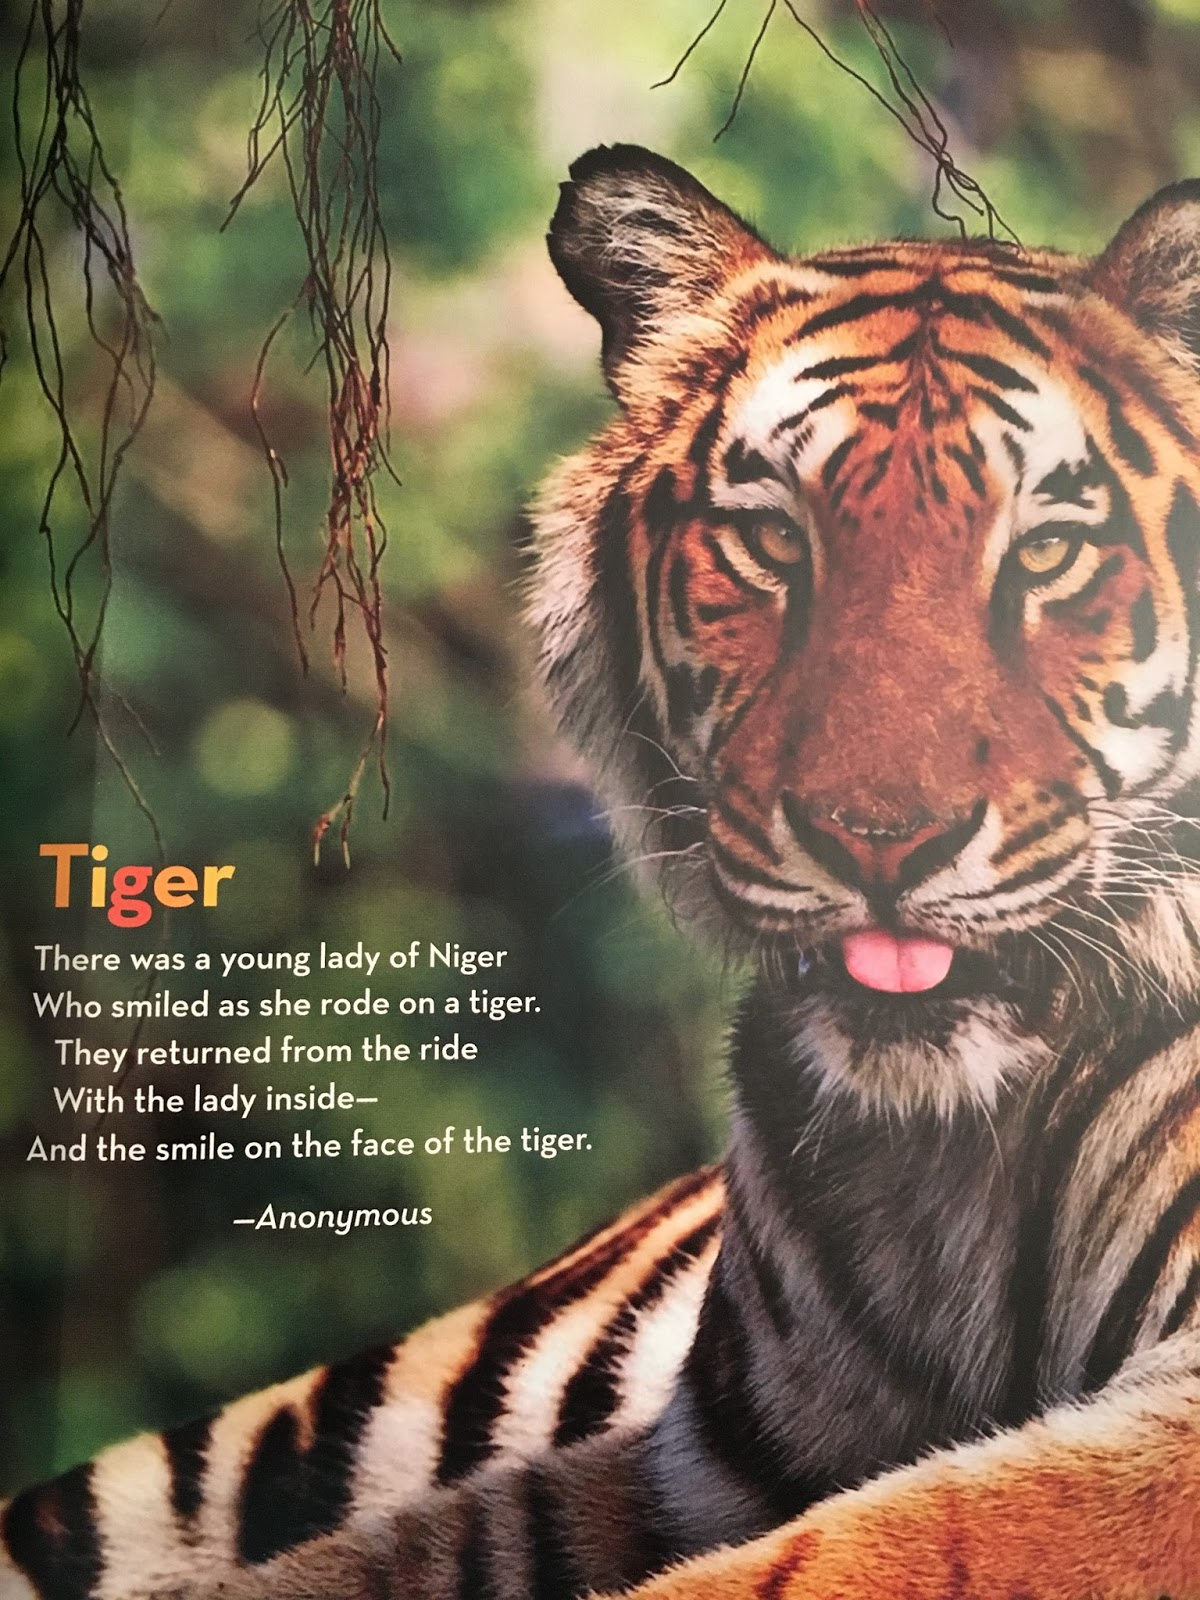 The tyger poem review and analysis | Term paper Writing